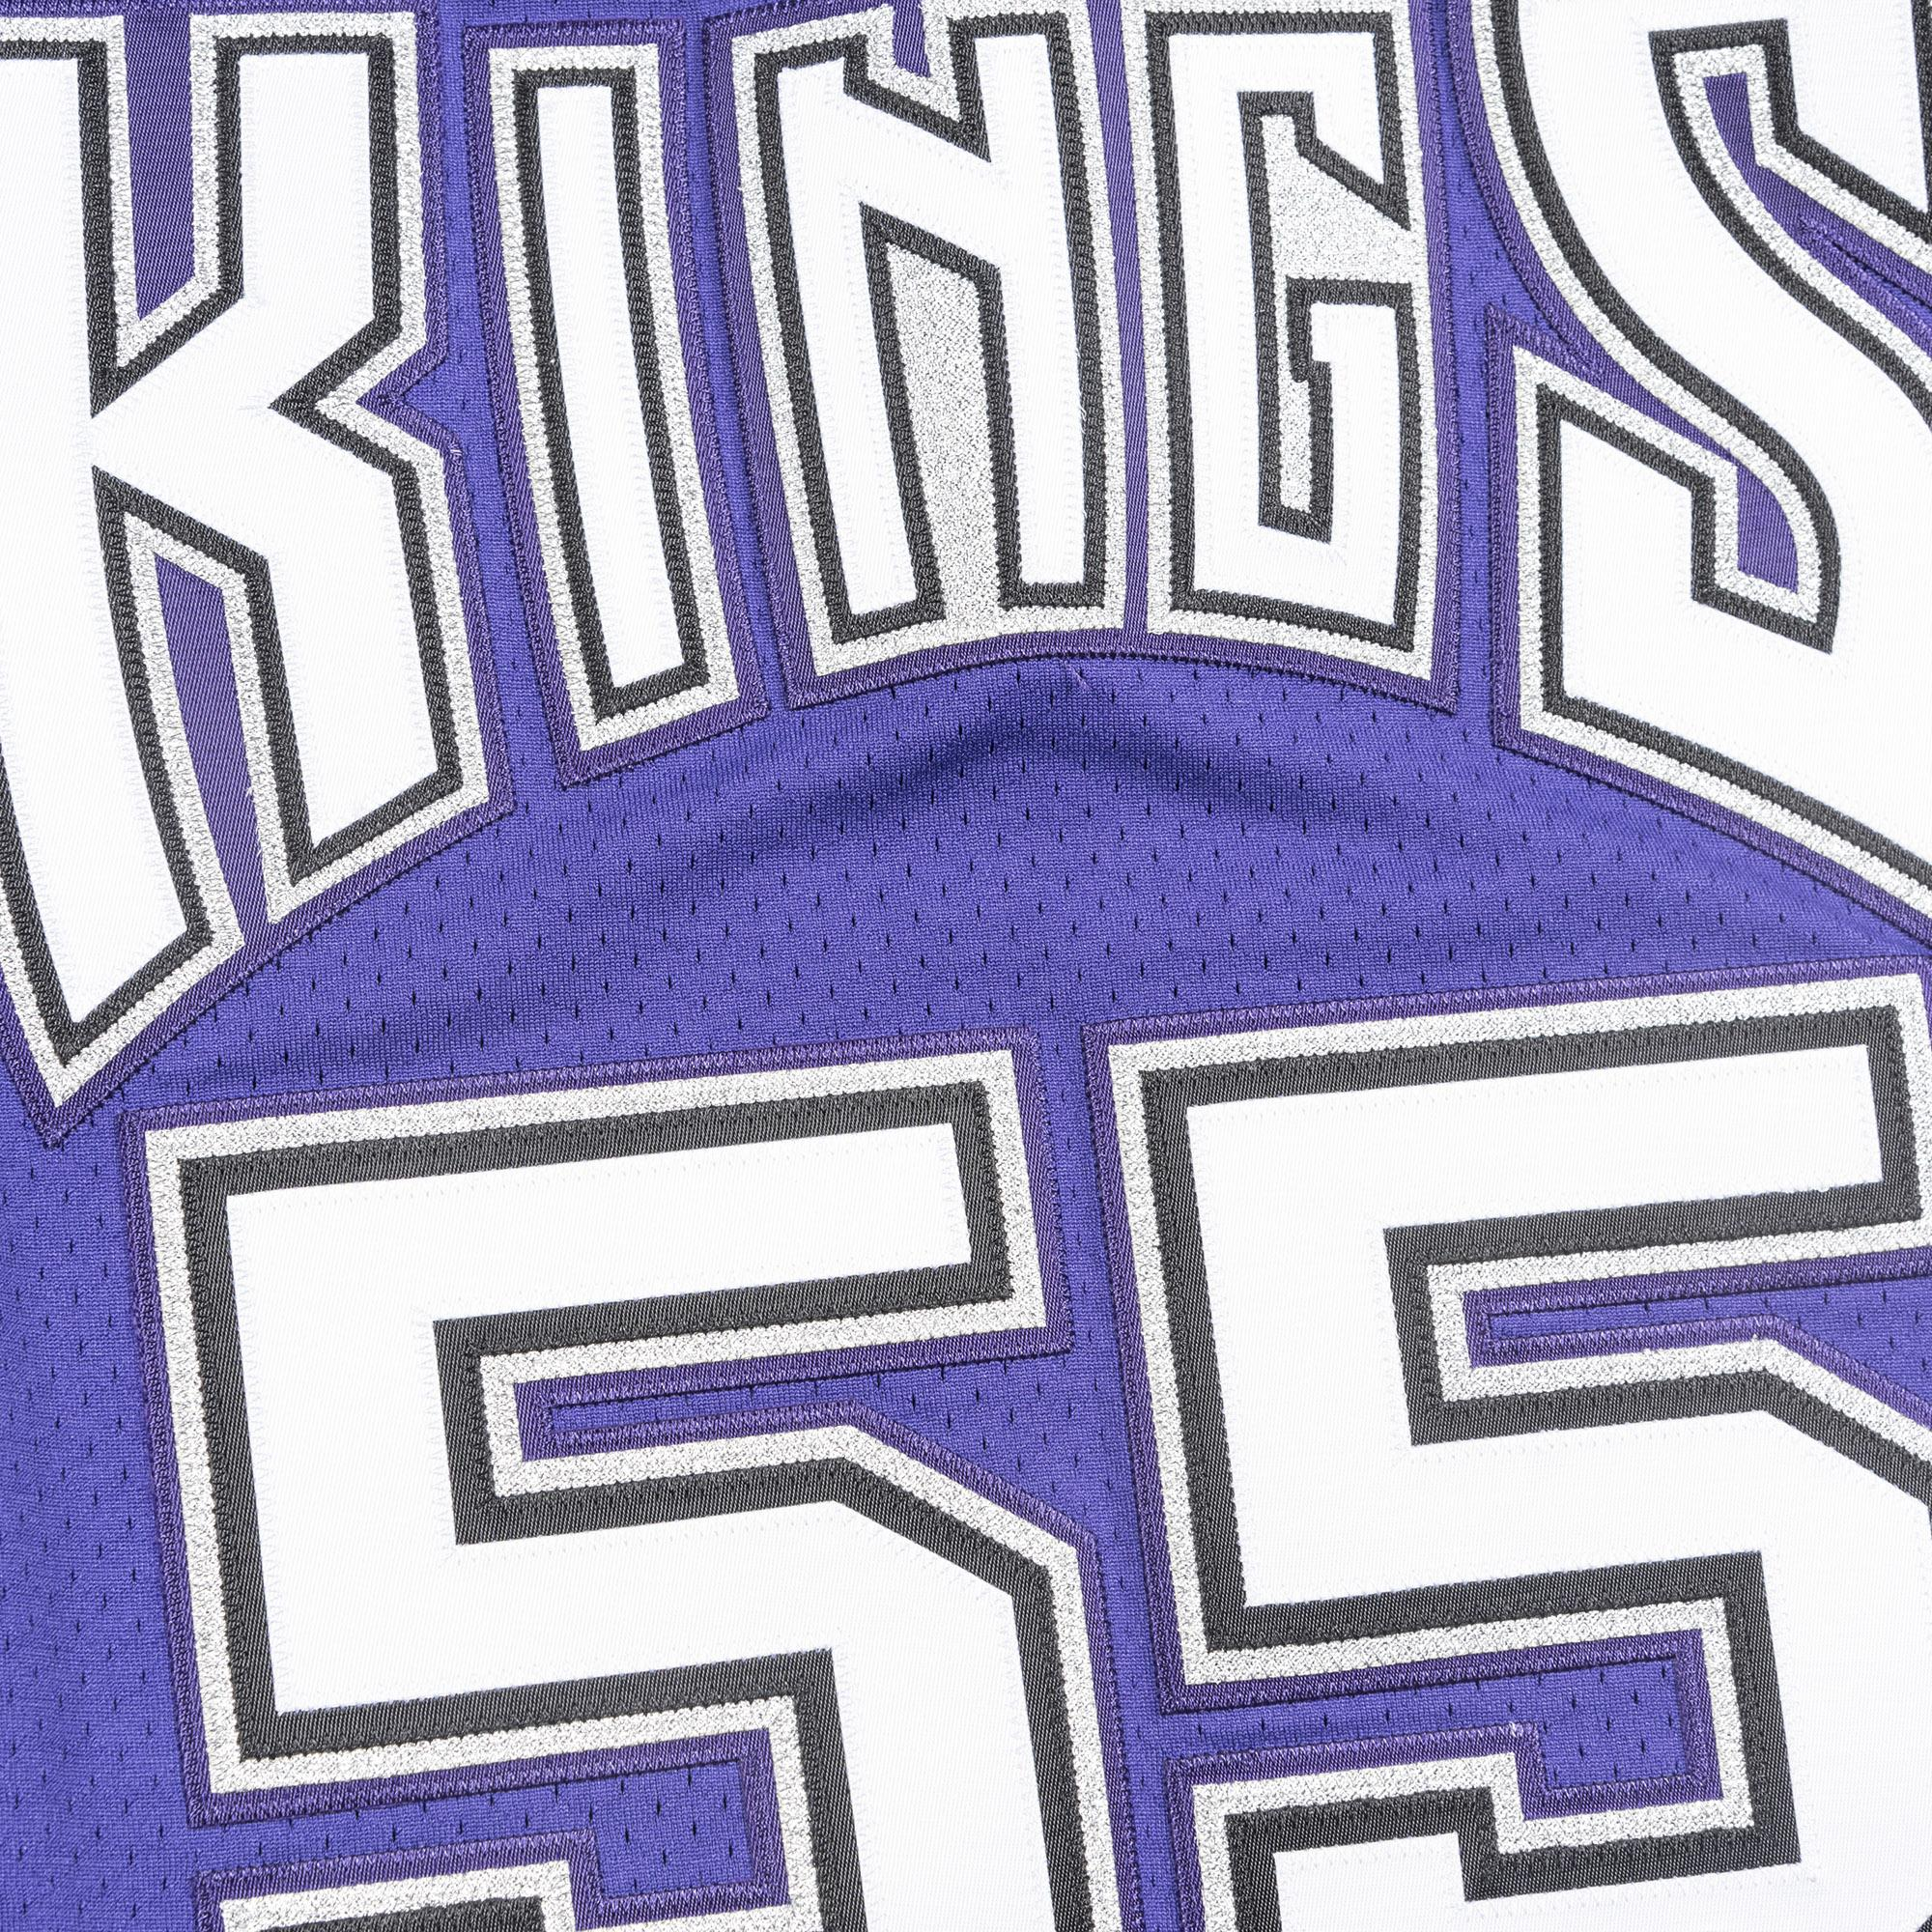 cheap for discount 2be95 0119a Mitchell & Ness Nostalgia Co.   Jason Williams 1998-99 ...